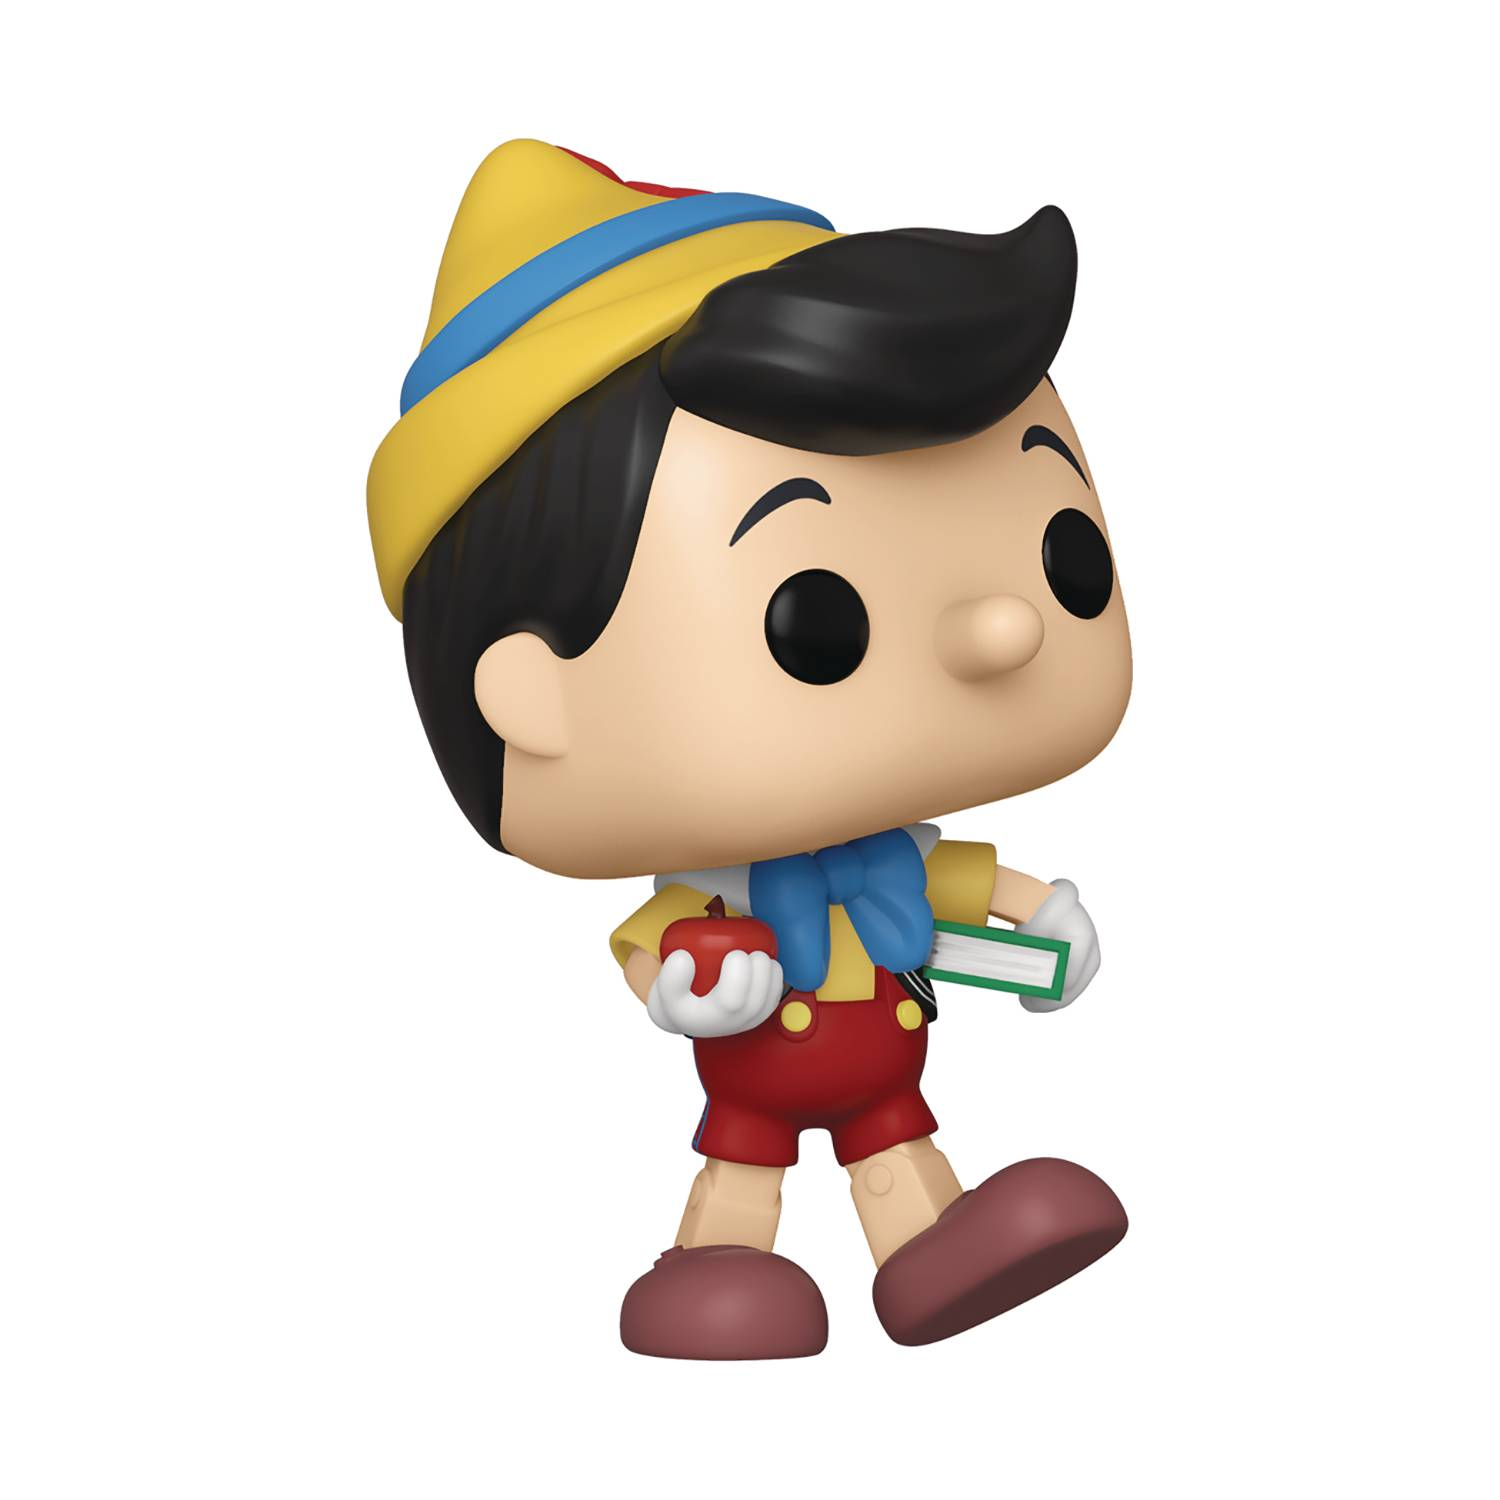 POP DISNEY PINOCCHIO SCHOOL BOUND PINOCCHIO VINYL FIG